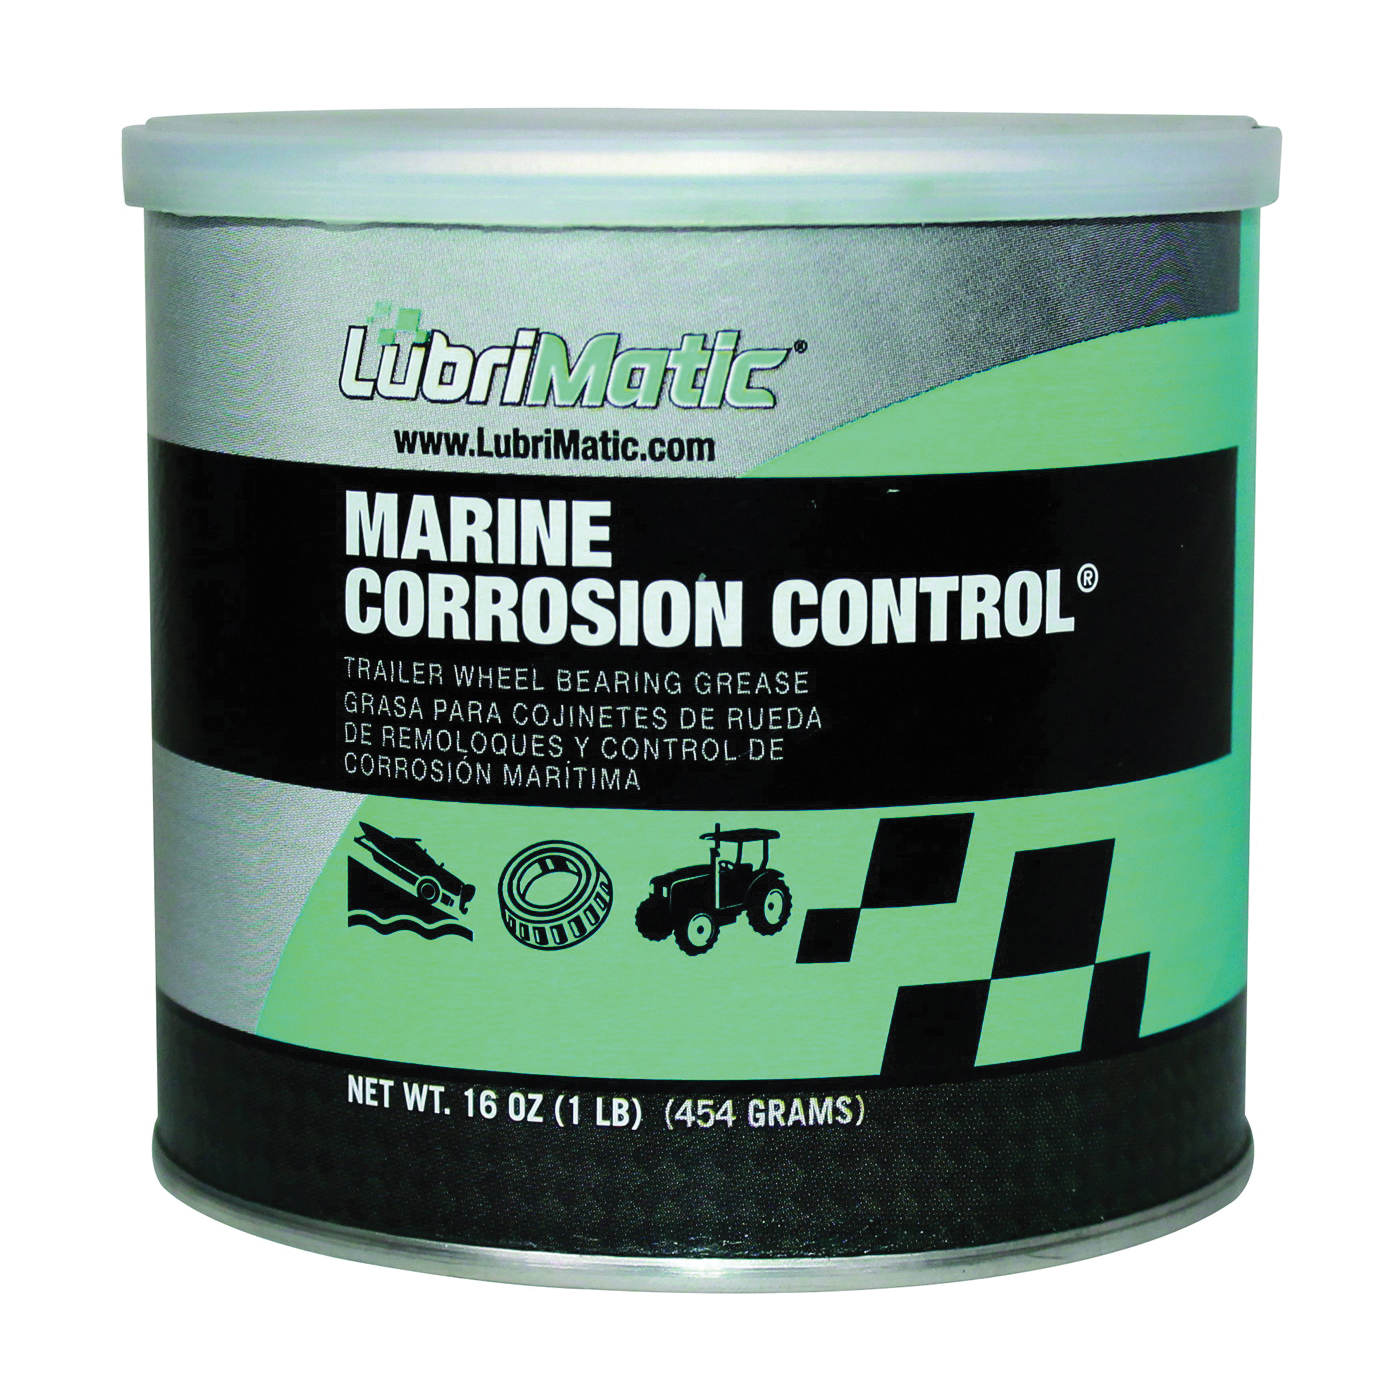 Picture of LubriMatic 11404 Trailer Wheelbearing Grease, 2, 16 oz Package, Can, Slight Hydrocarbon, Green